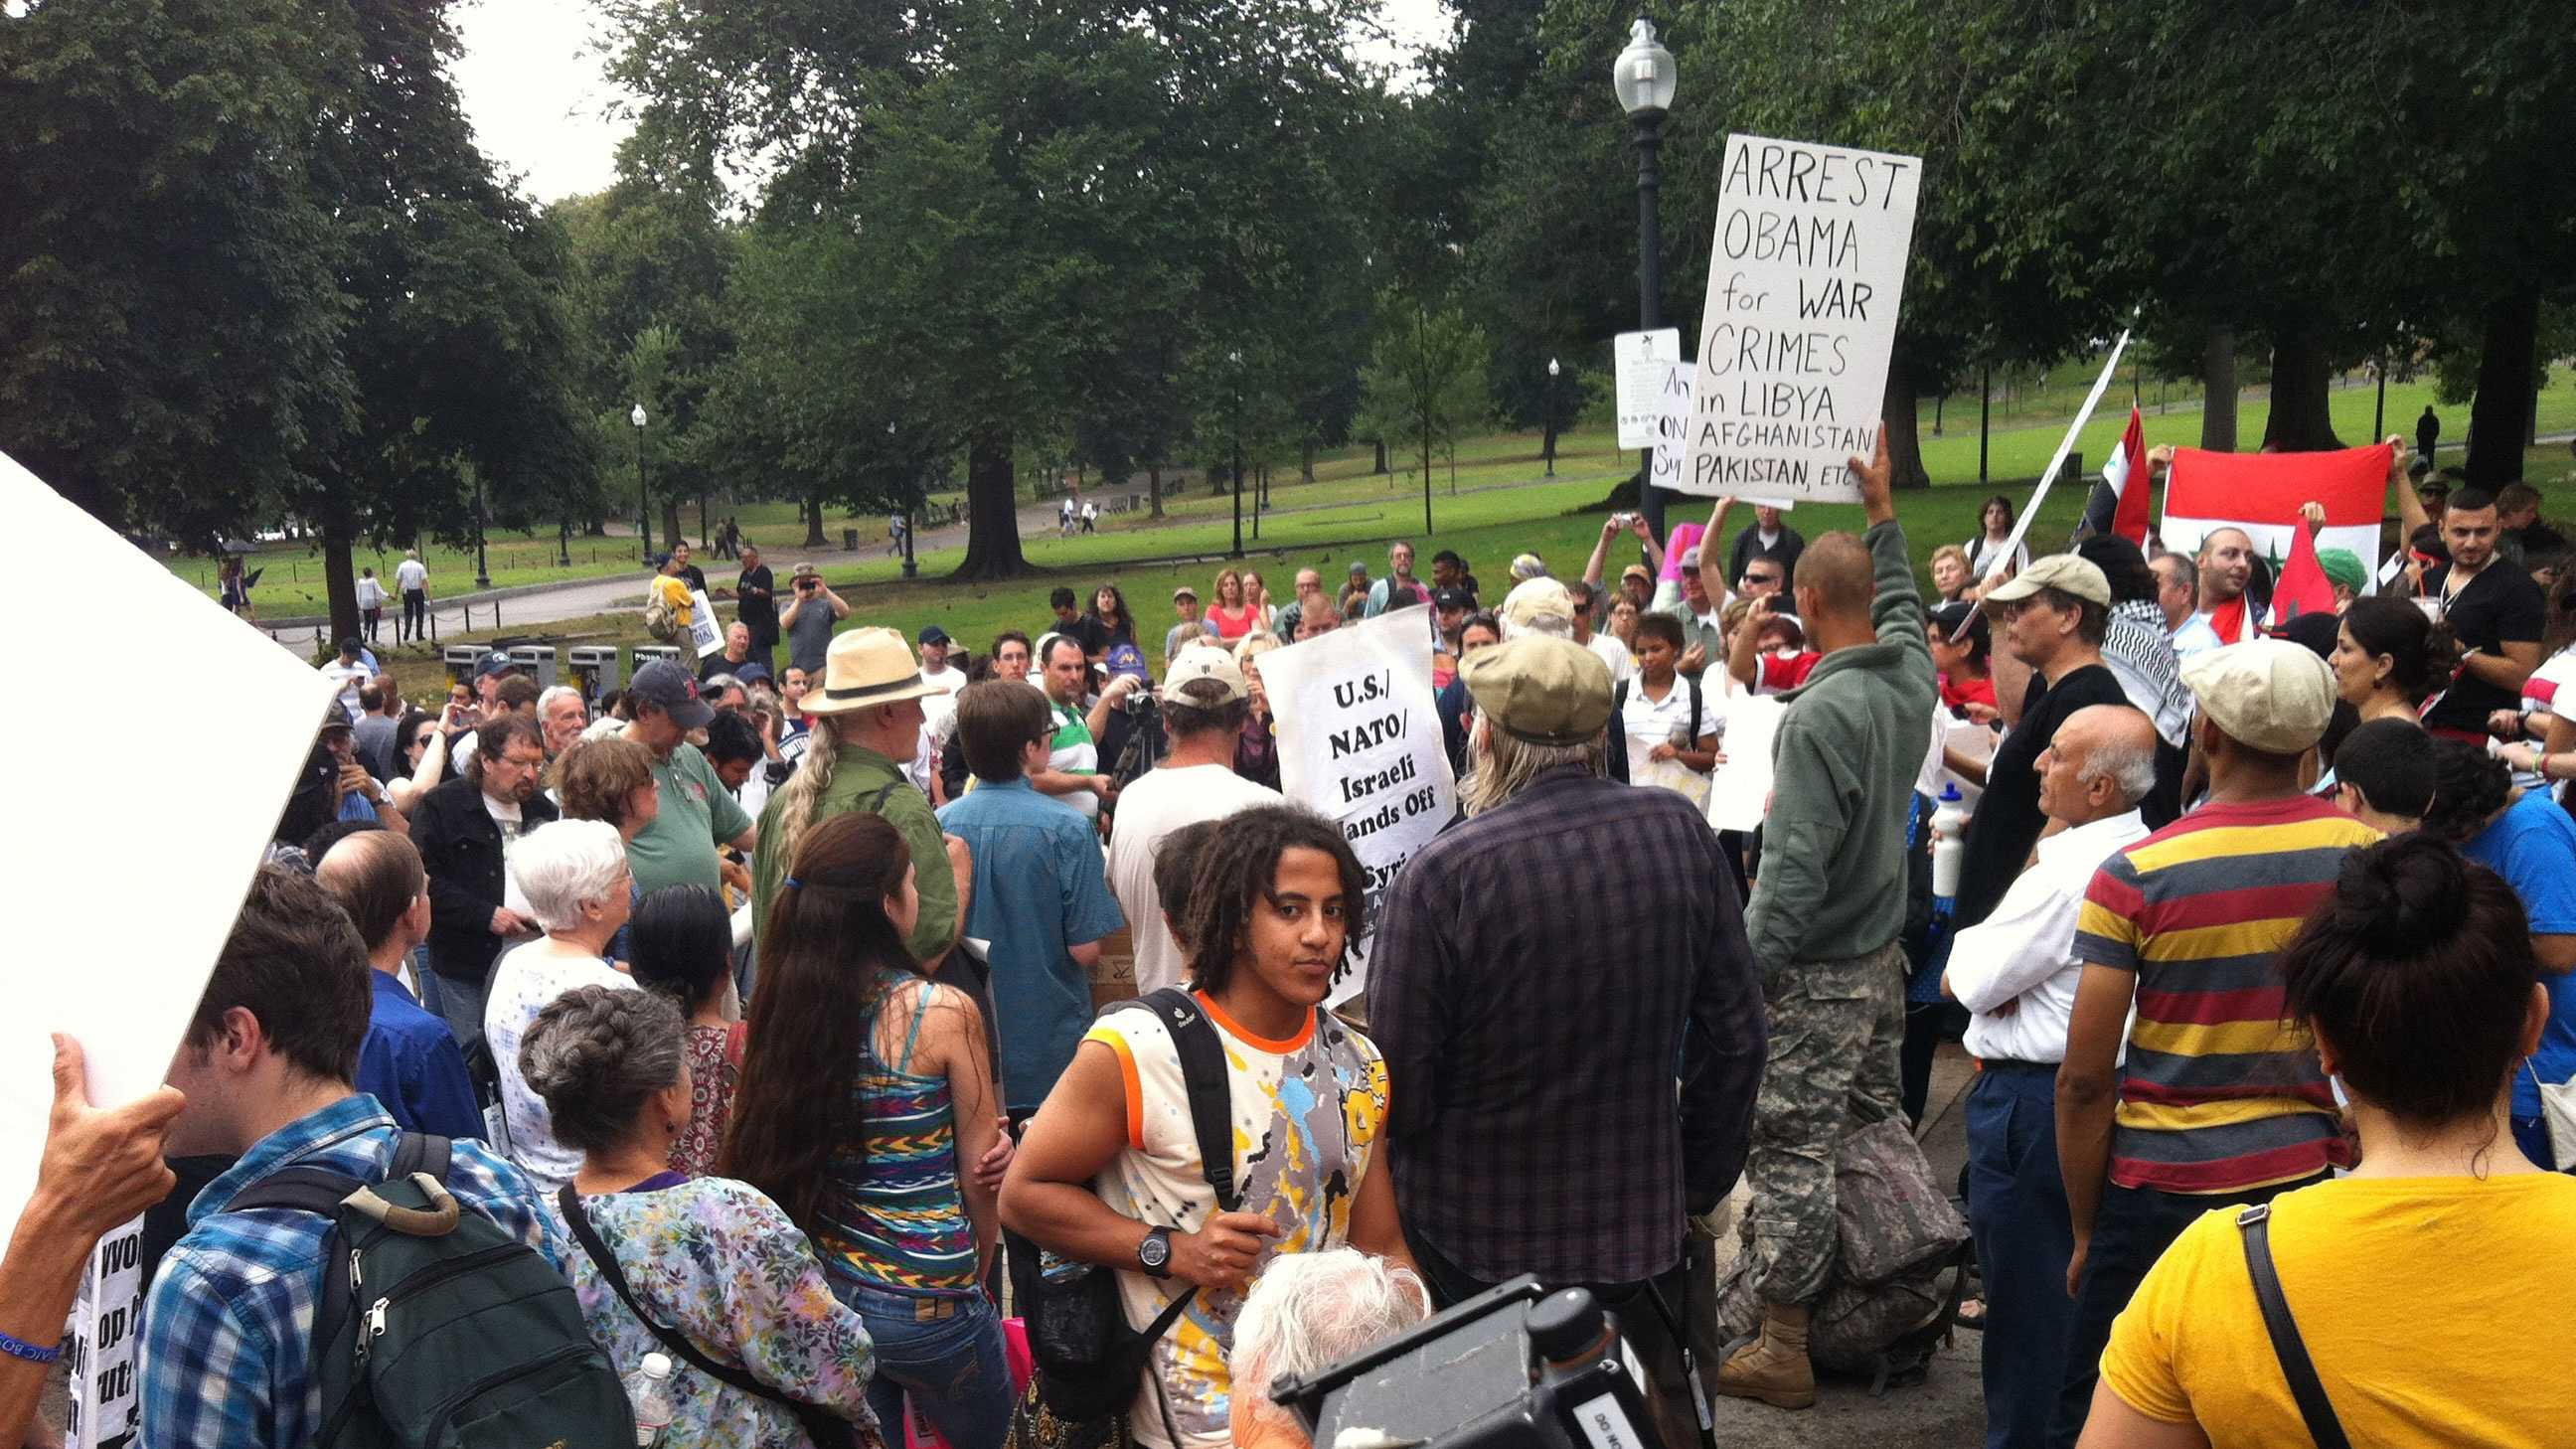 Protesters opposing U.S. and NATO military action in Syriarally on Boston Common on Aug. 31, 2013.